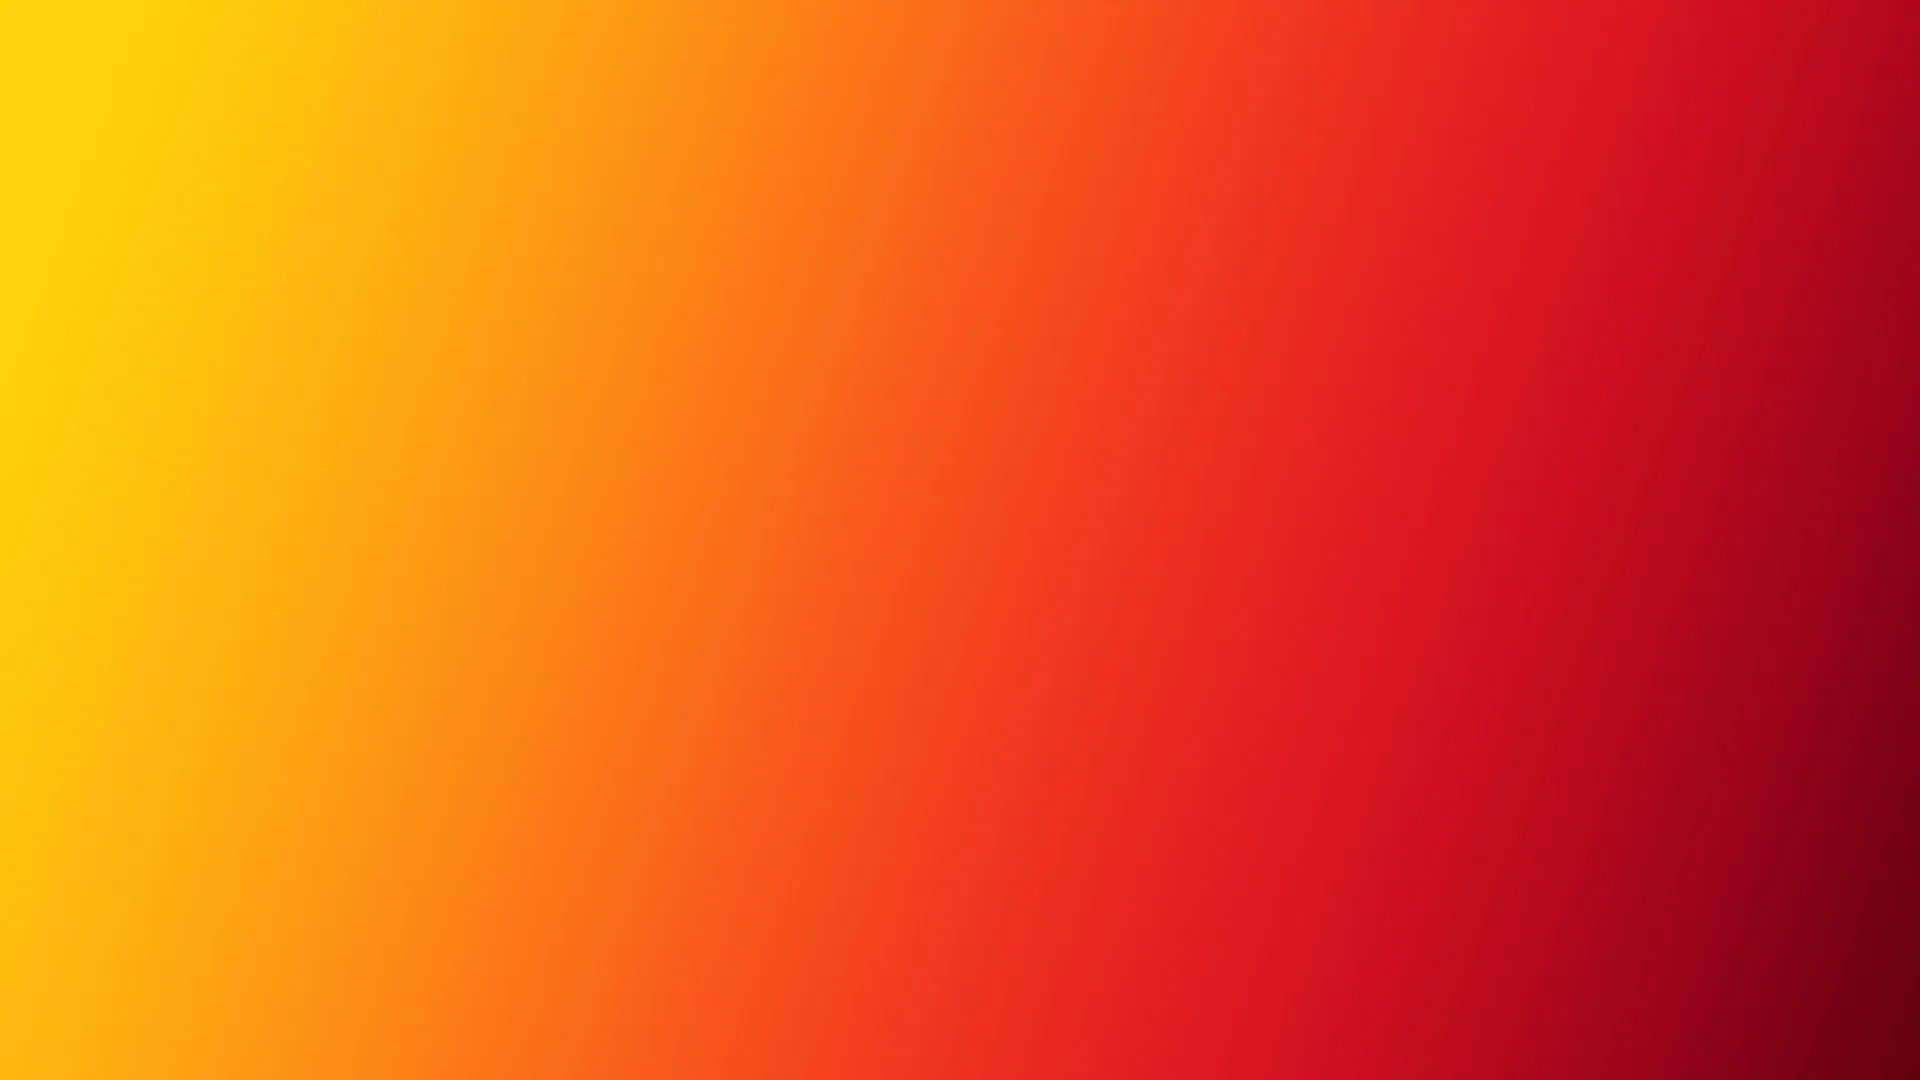 orange-yellow-Presentation-Gradient-Background